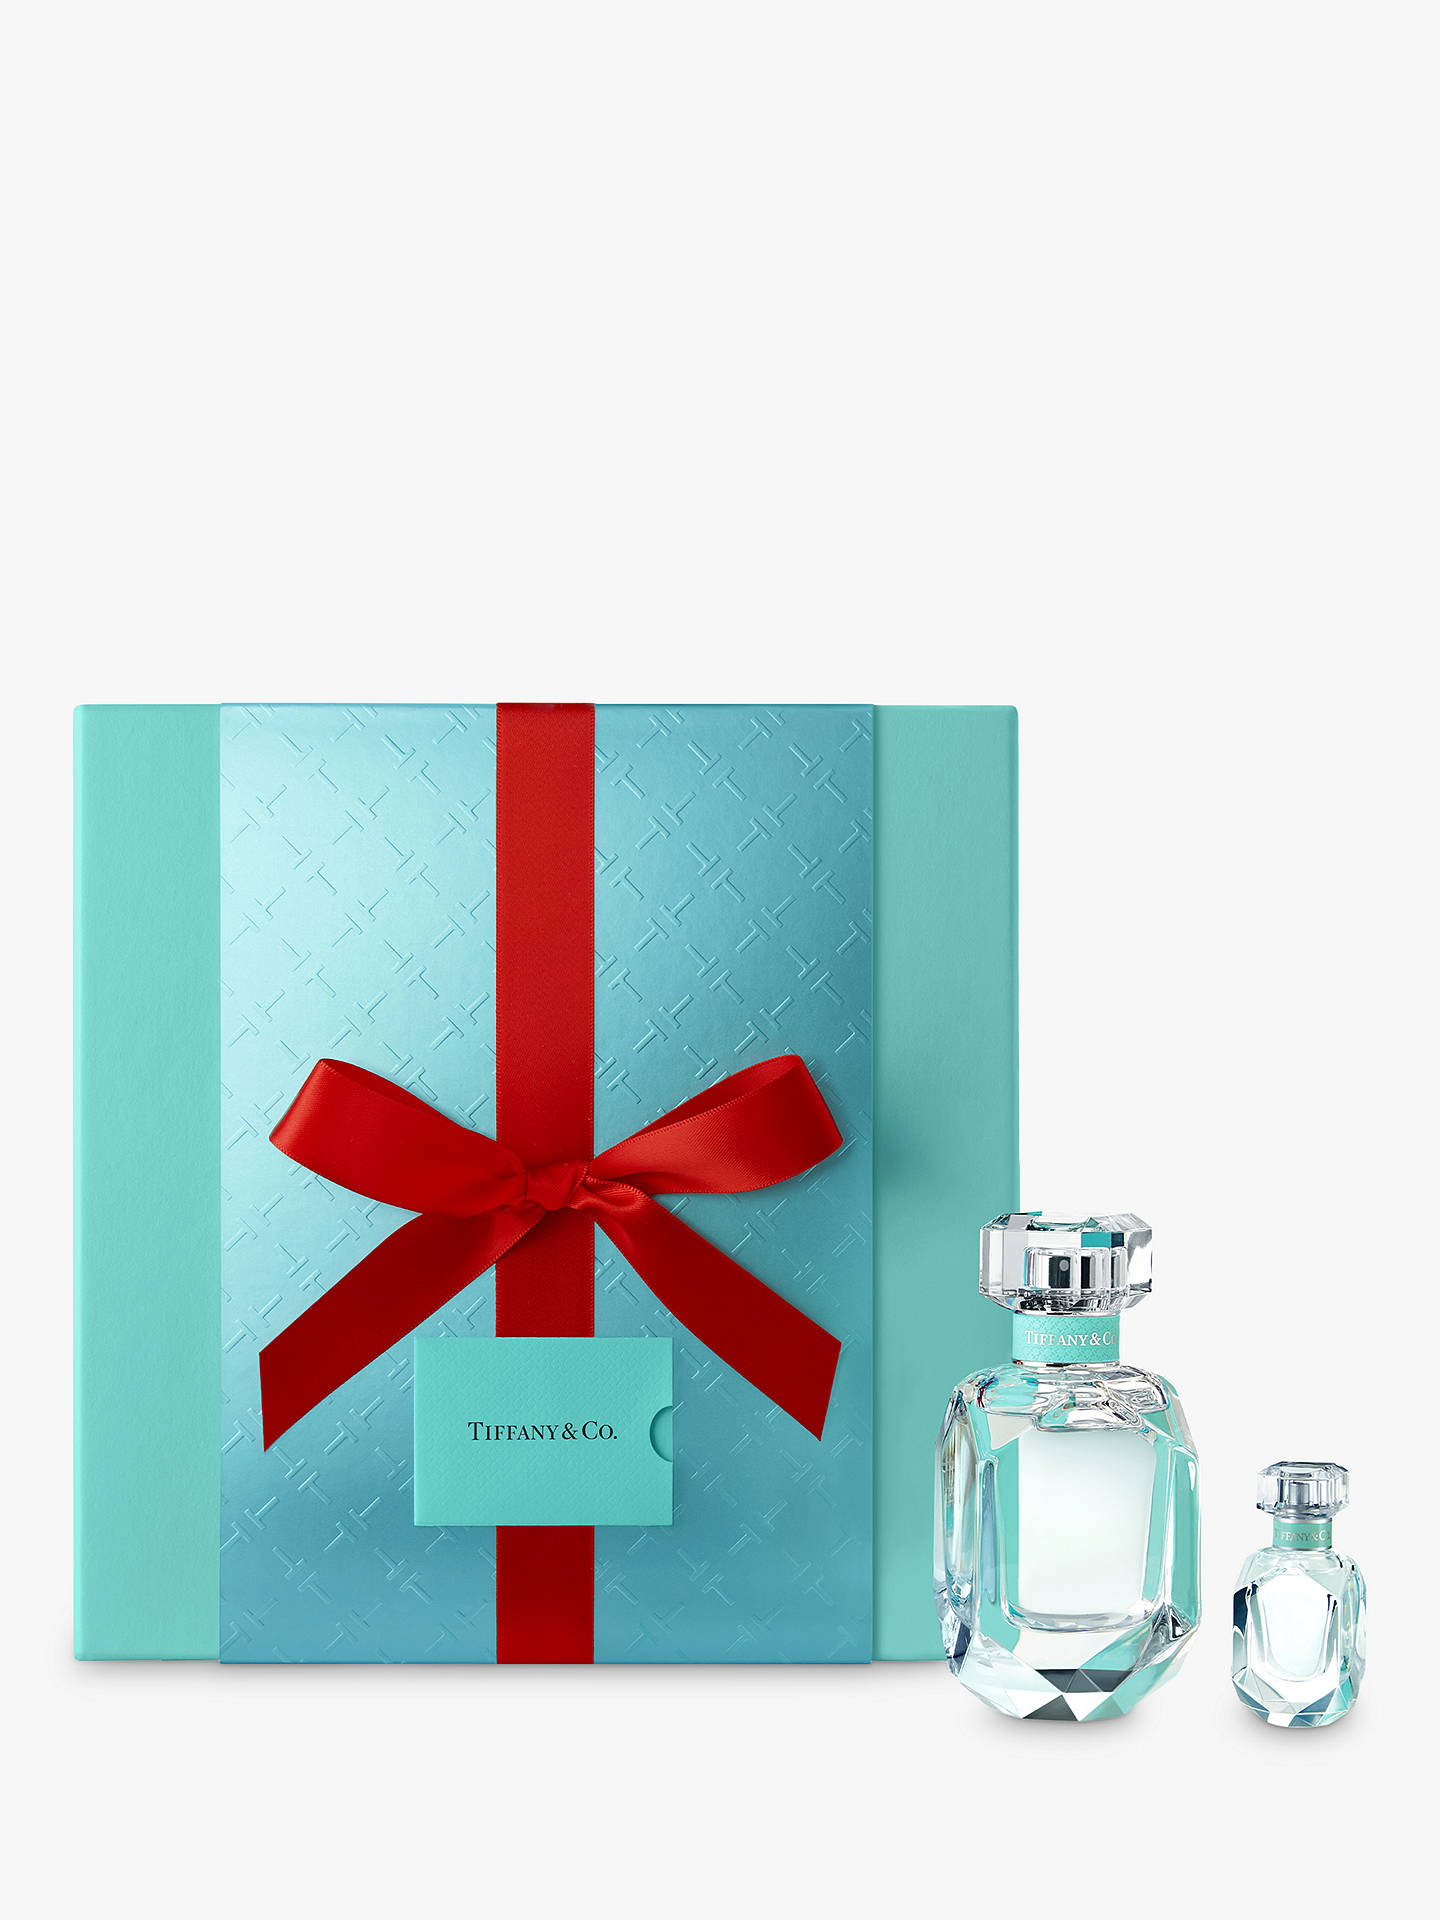 Buy Tiffany & Co Eau de Parfum 50ml Fragrance Gift Set Online at johnlewis.com